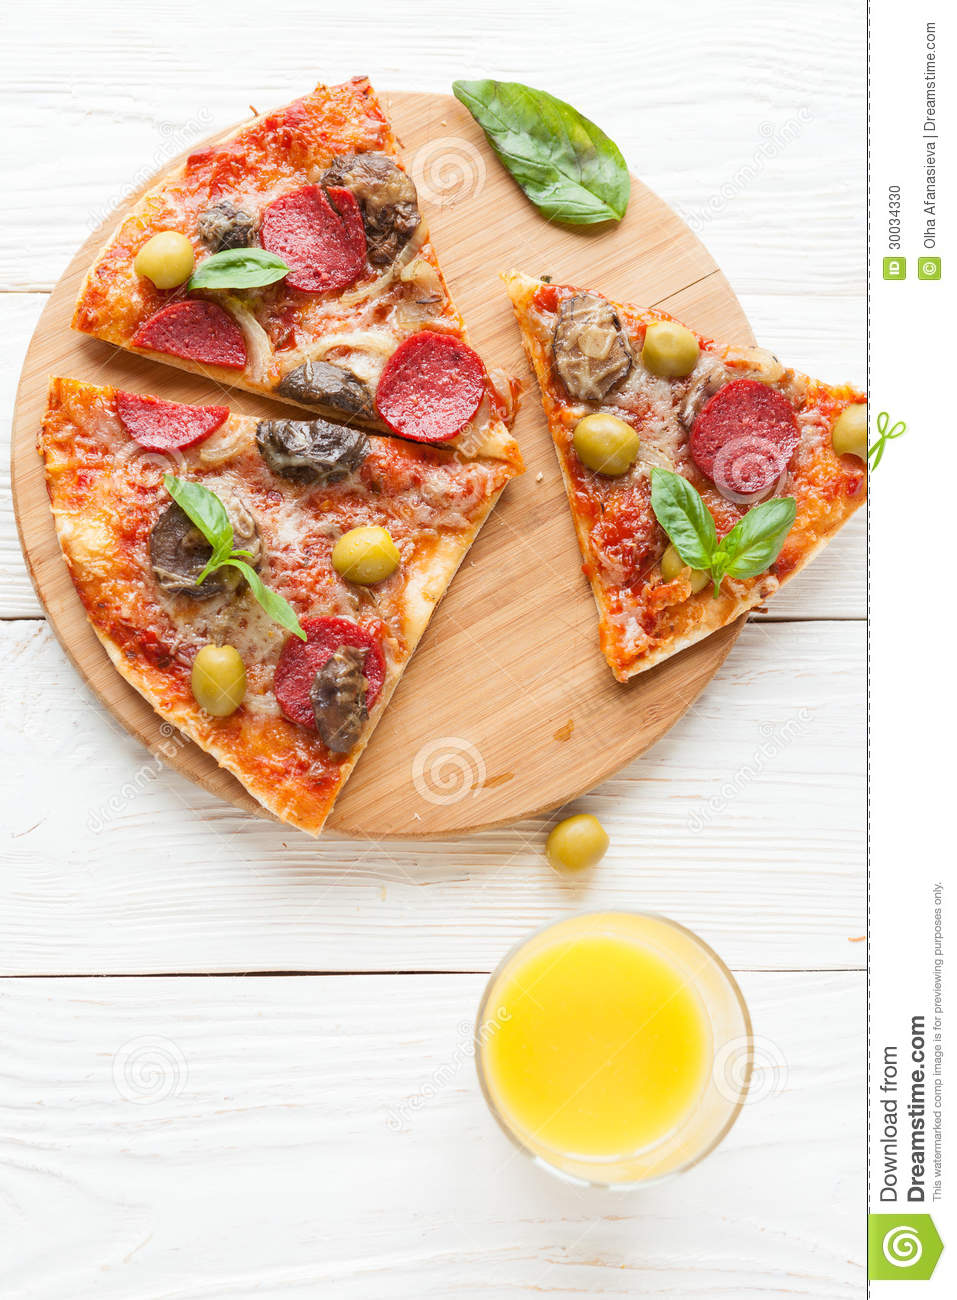 how to cut pizza into 6 slices